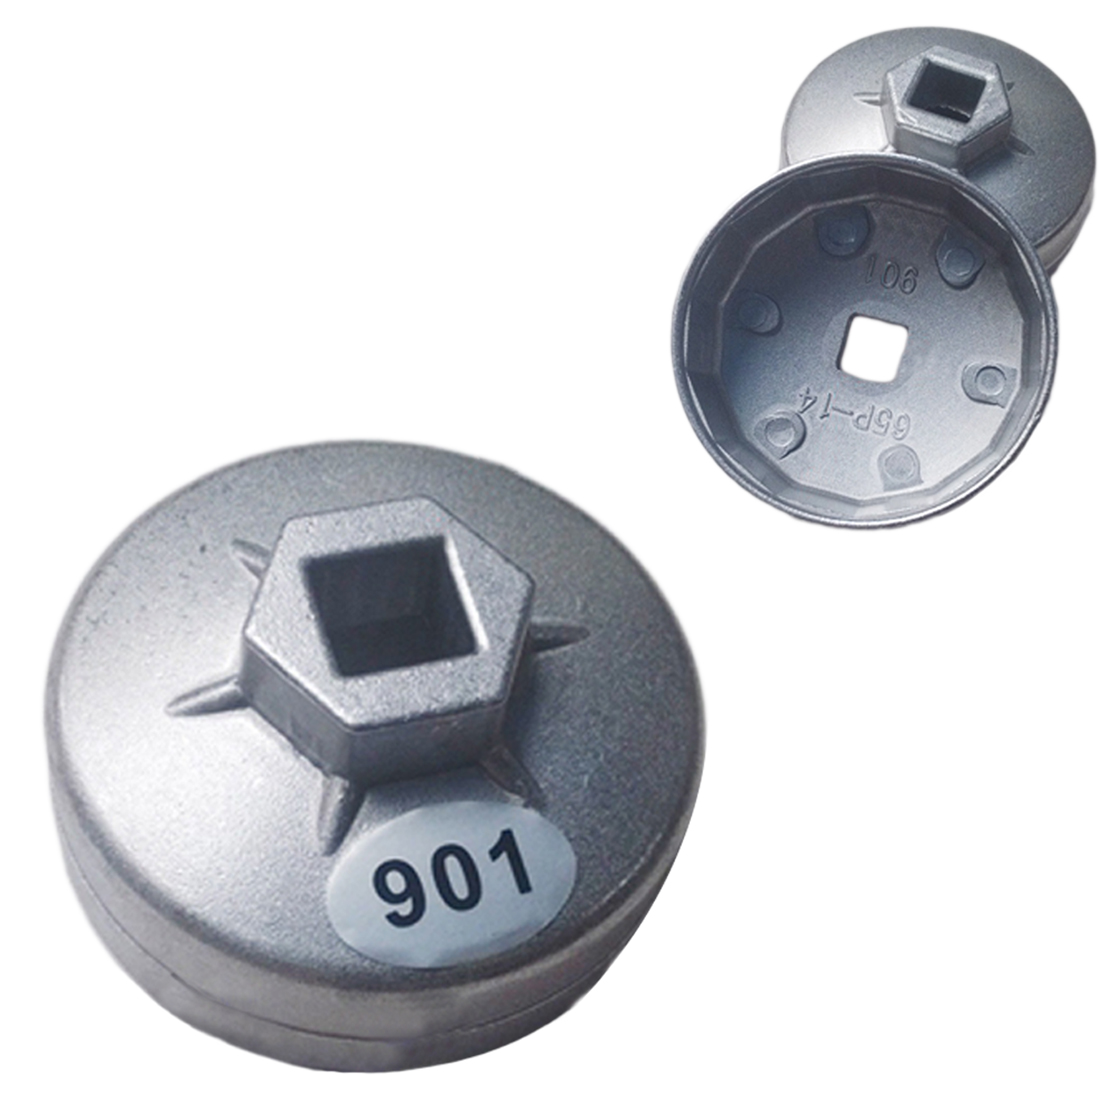 """901 Cap Oil Filter Wrench 1/2"""" Square Drive Oil Filter Removel Tools Filter Socket Wrench Spanner Hand Tool"""